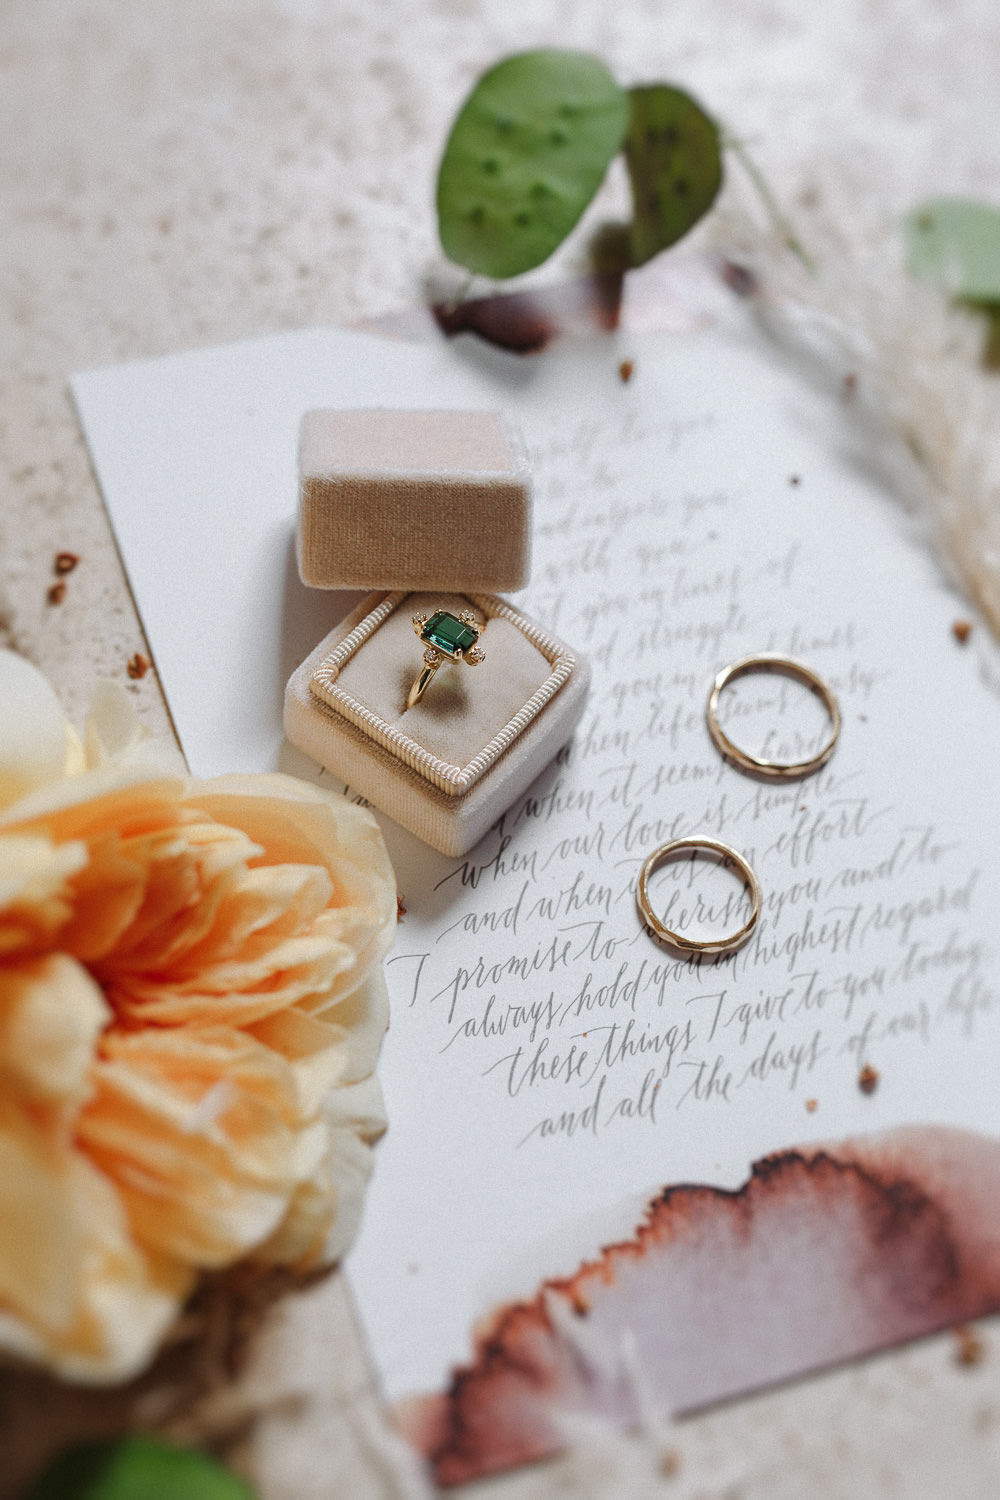 My-golden-age-lab-engagement-ring-Camilla-Anchisi-photography